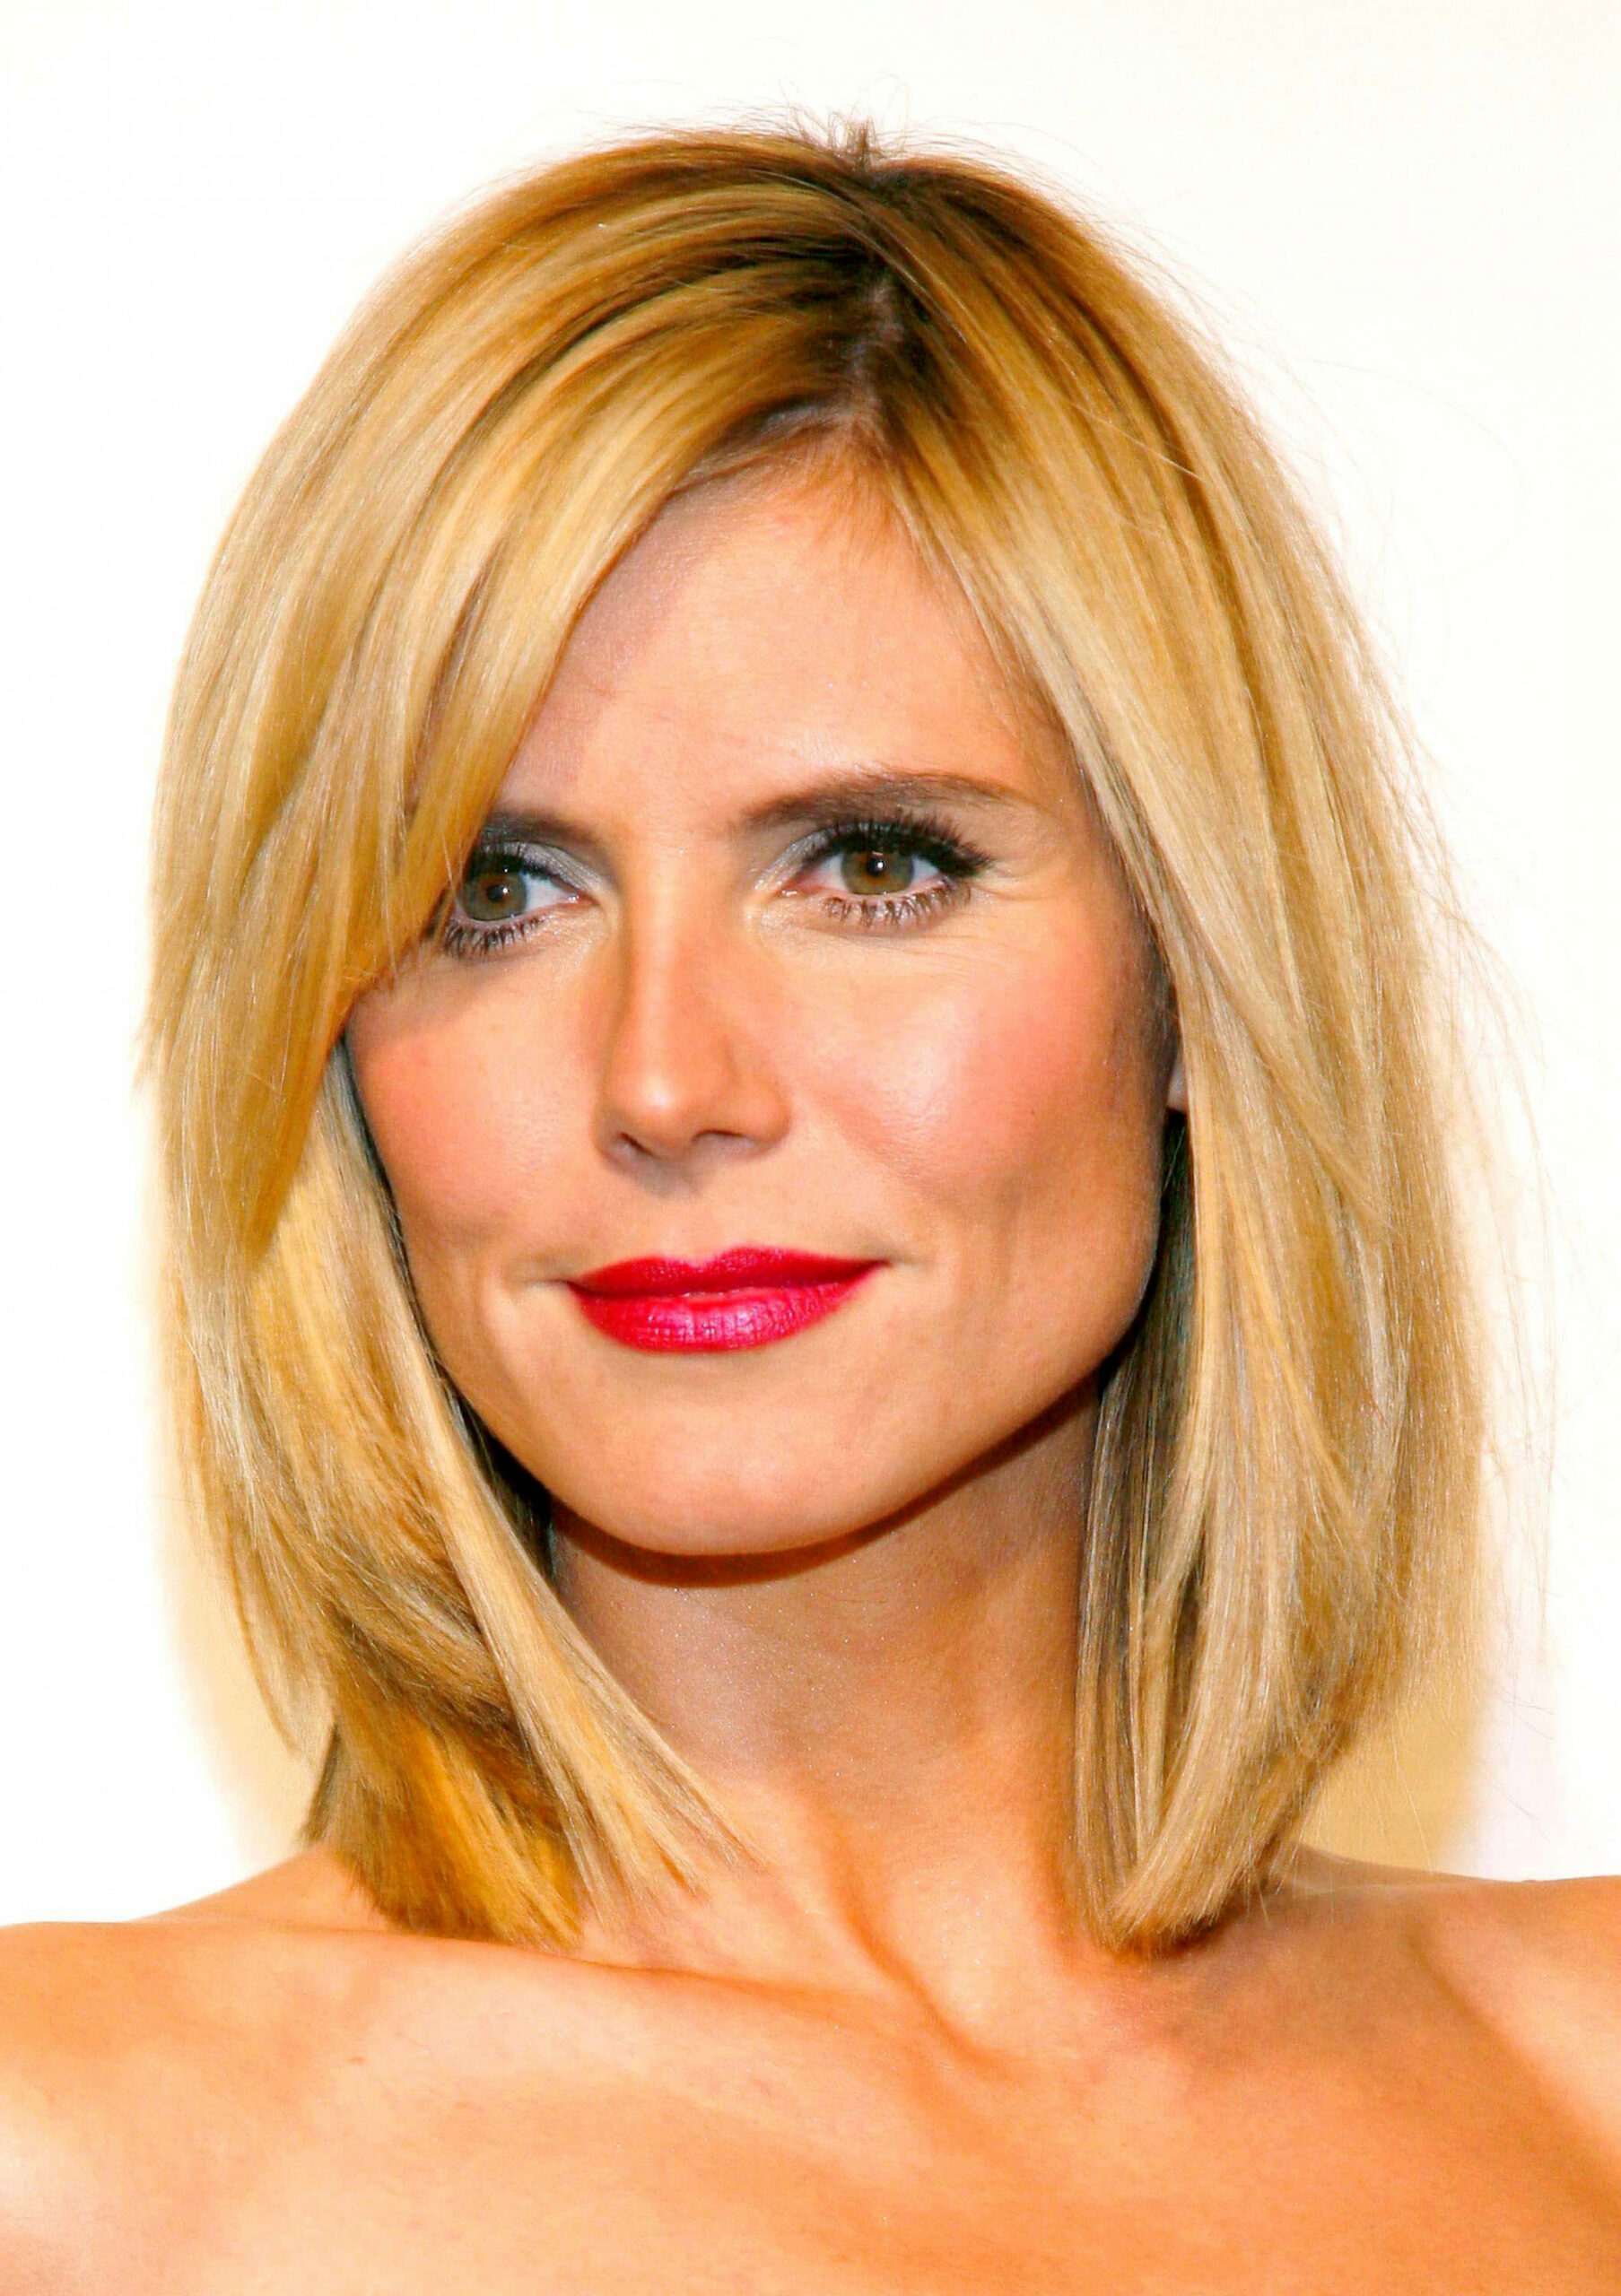 10 flattering short hairstyles for square faces you need to see